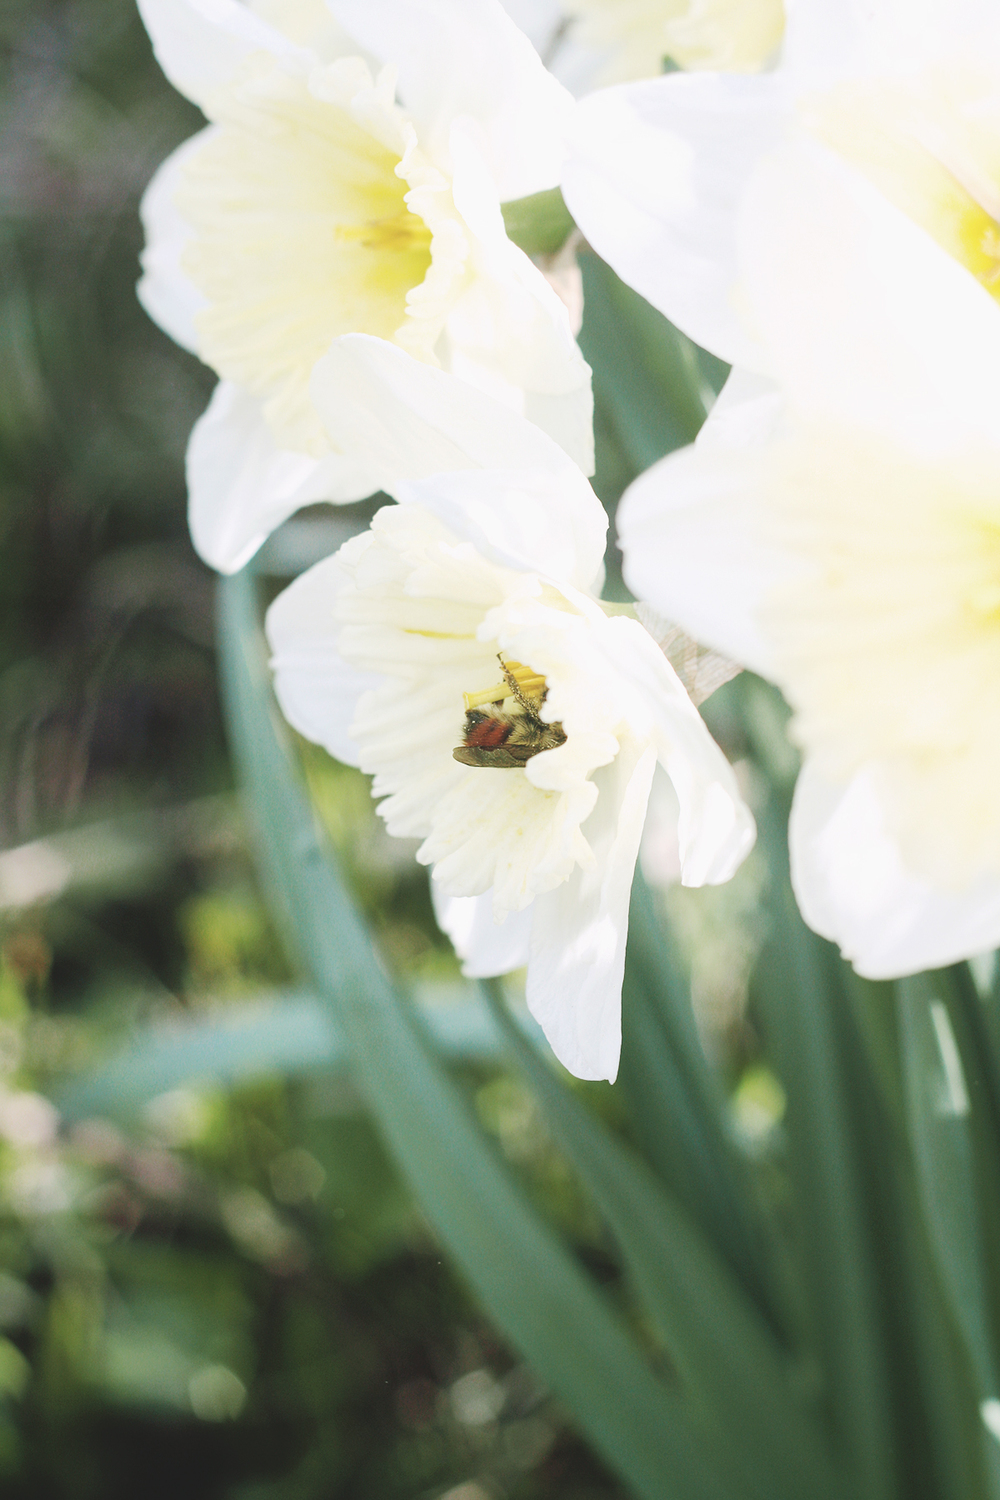 Honey Bee on a Daffodil | Spirit de la Lune